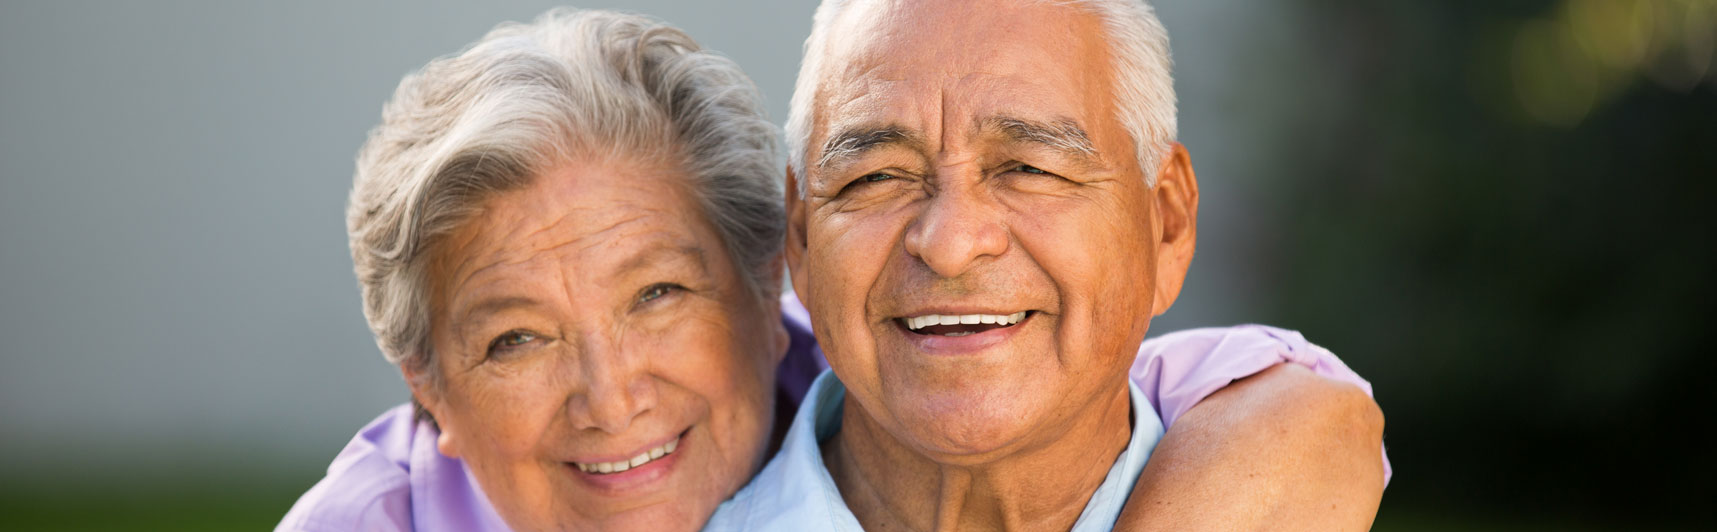 Elderly couples smiling